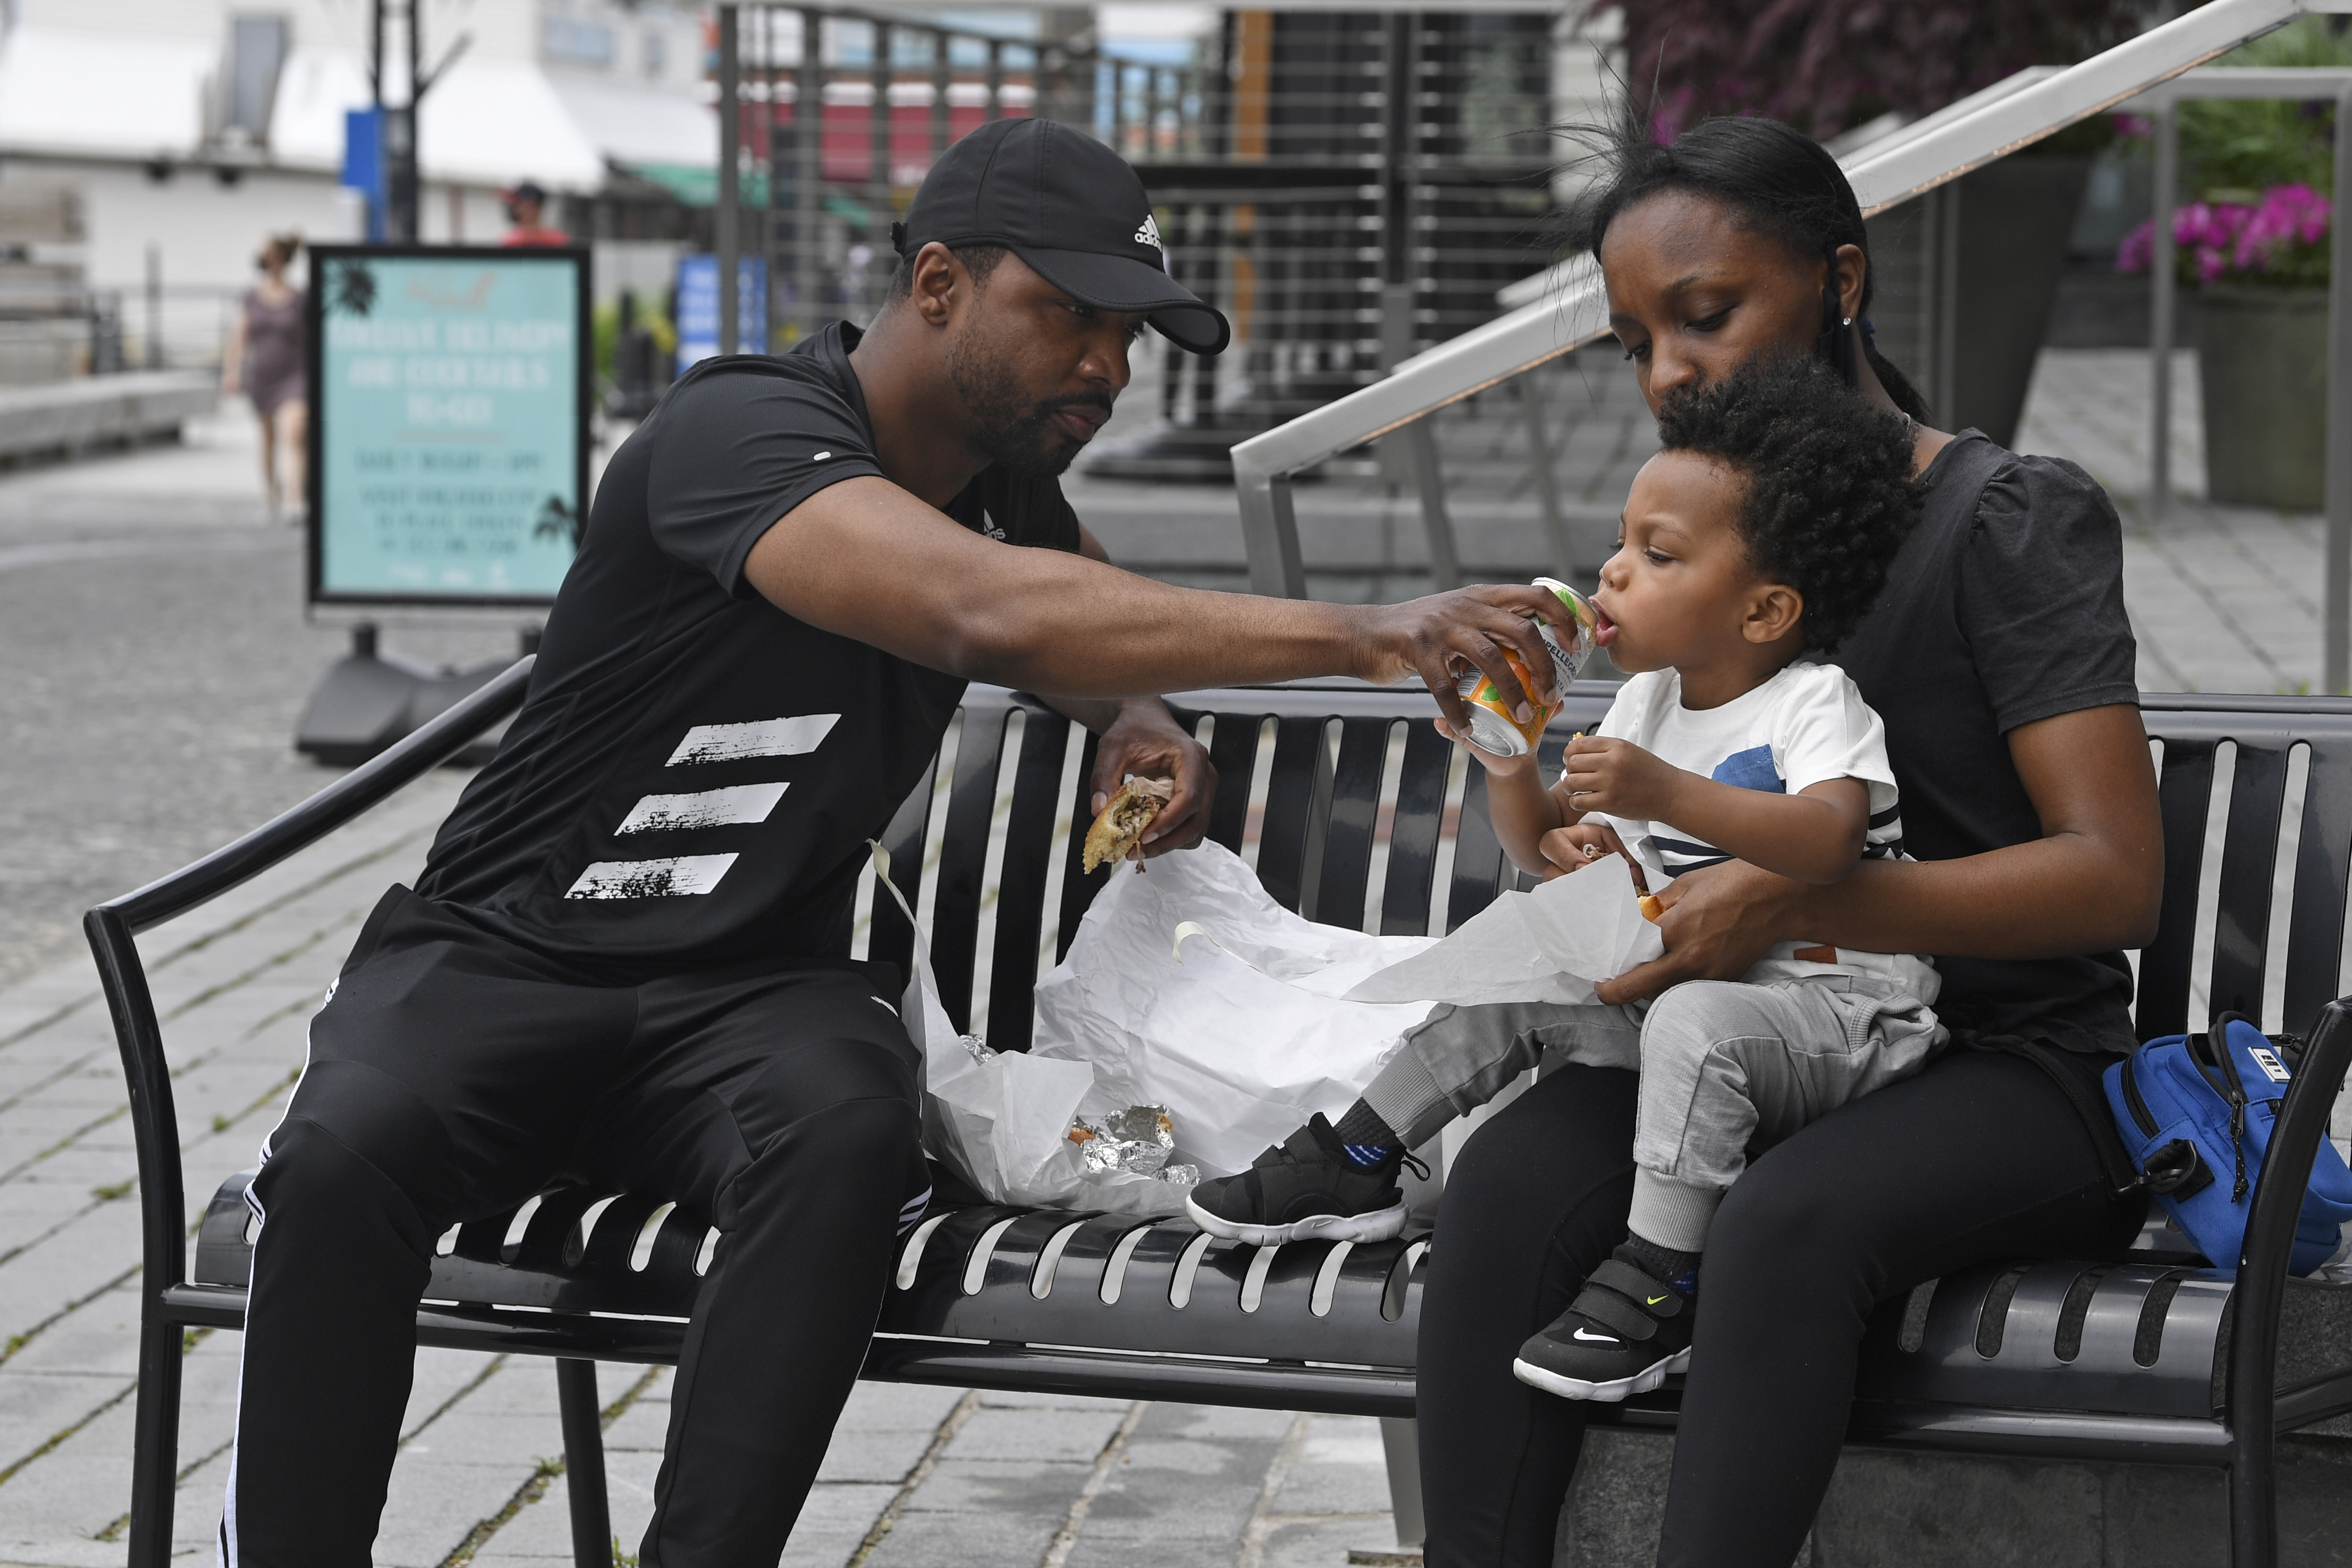 John Price and Bijan Black have lunch with their son Parker Price, 2, all of Seat Pleasant, Md., at the Wharf area in Washington, Friday, May 29, 2020. Photo: AP